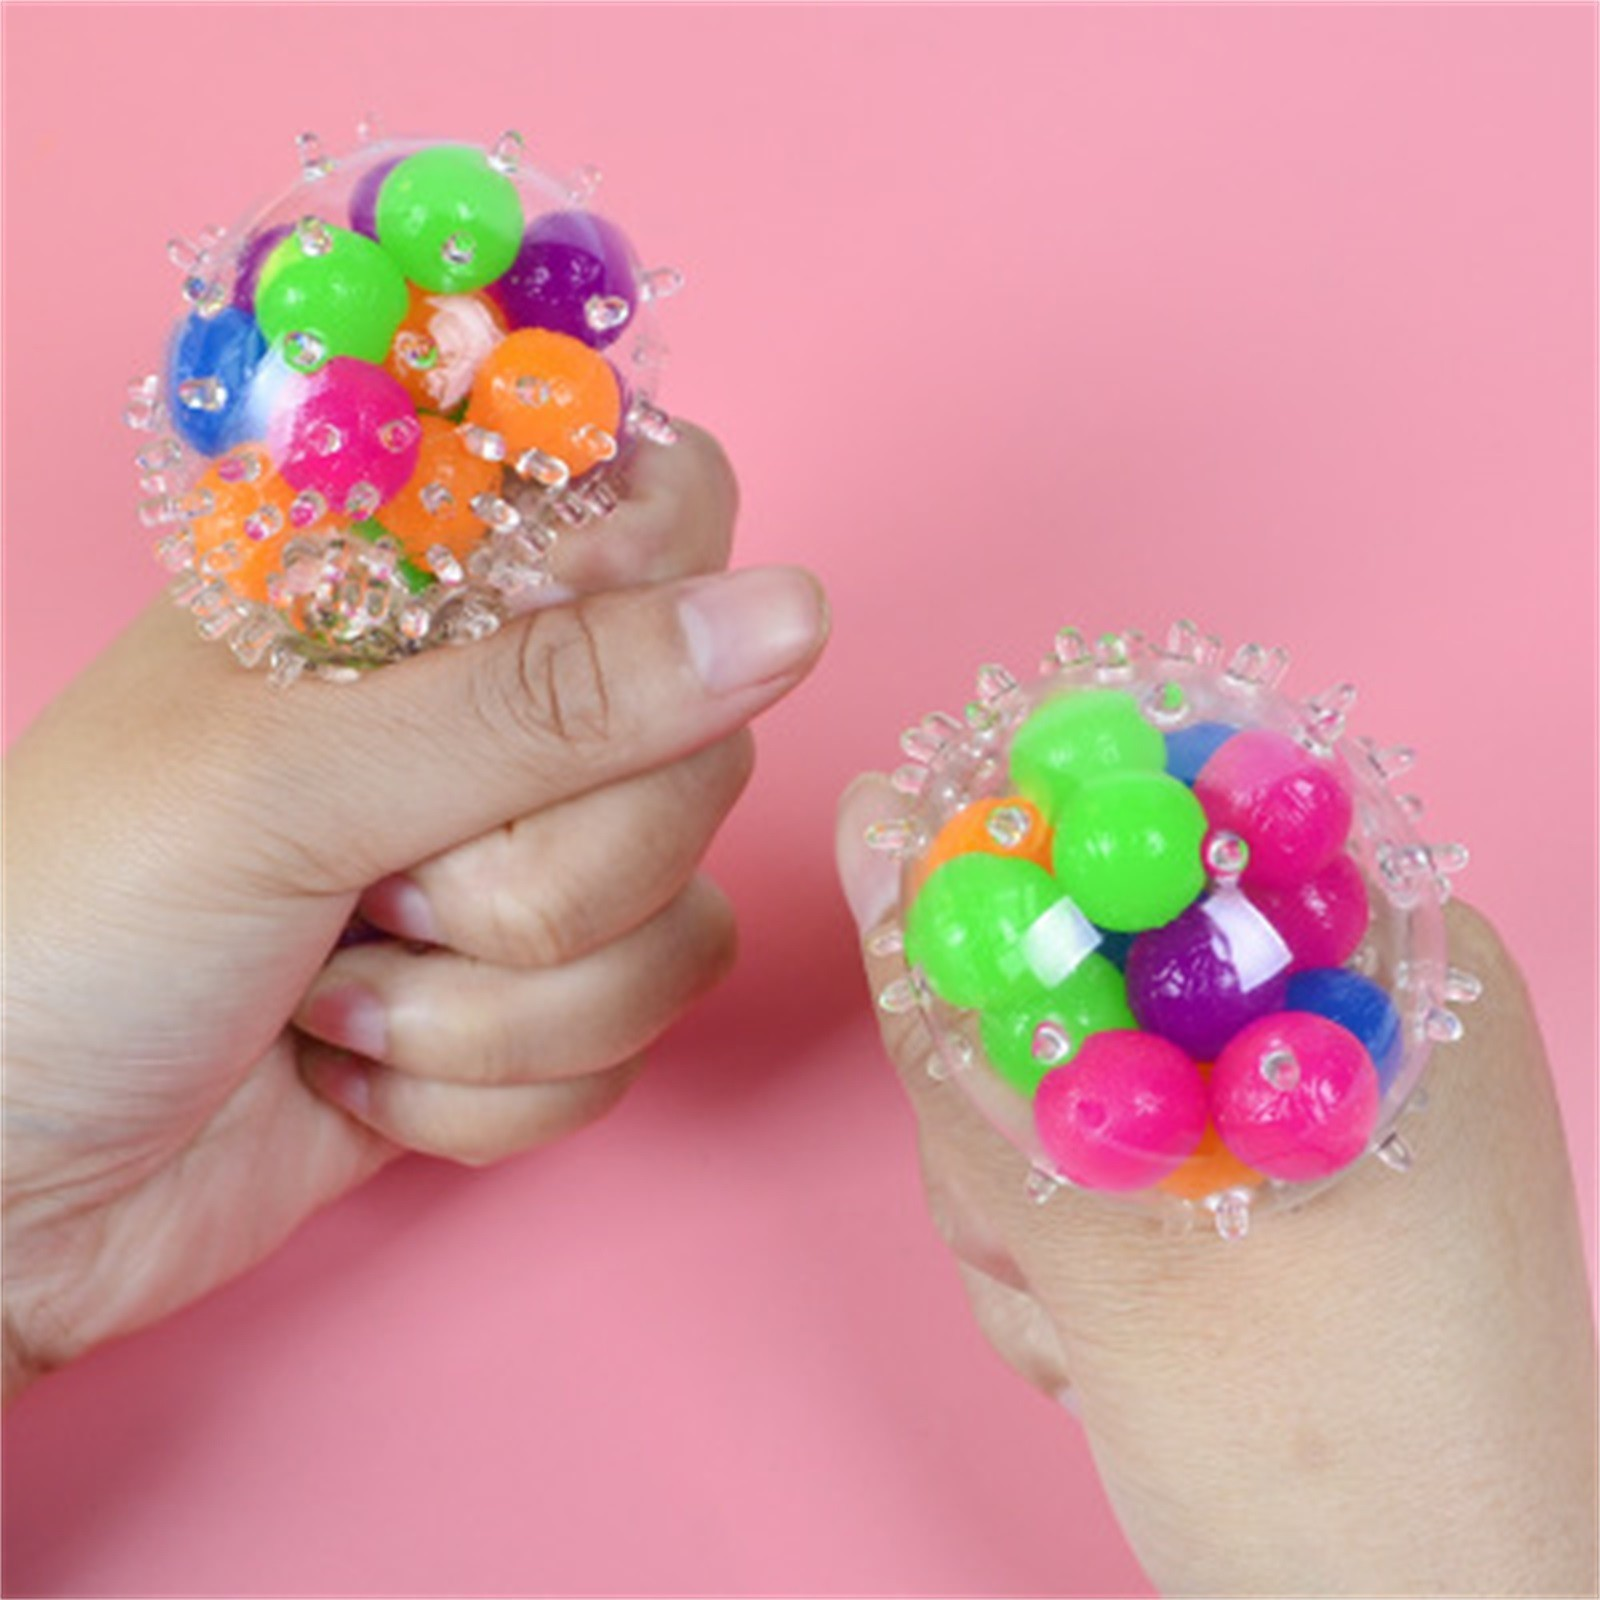 Toy Fidget-Toys Stress-Ball Pressure-Toy Squeezable 30ml Spongy